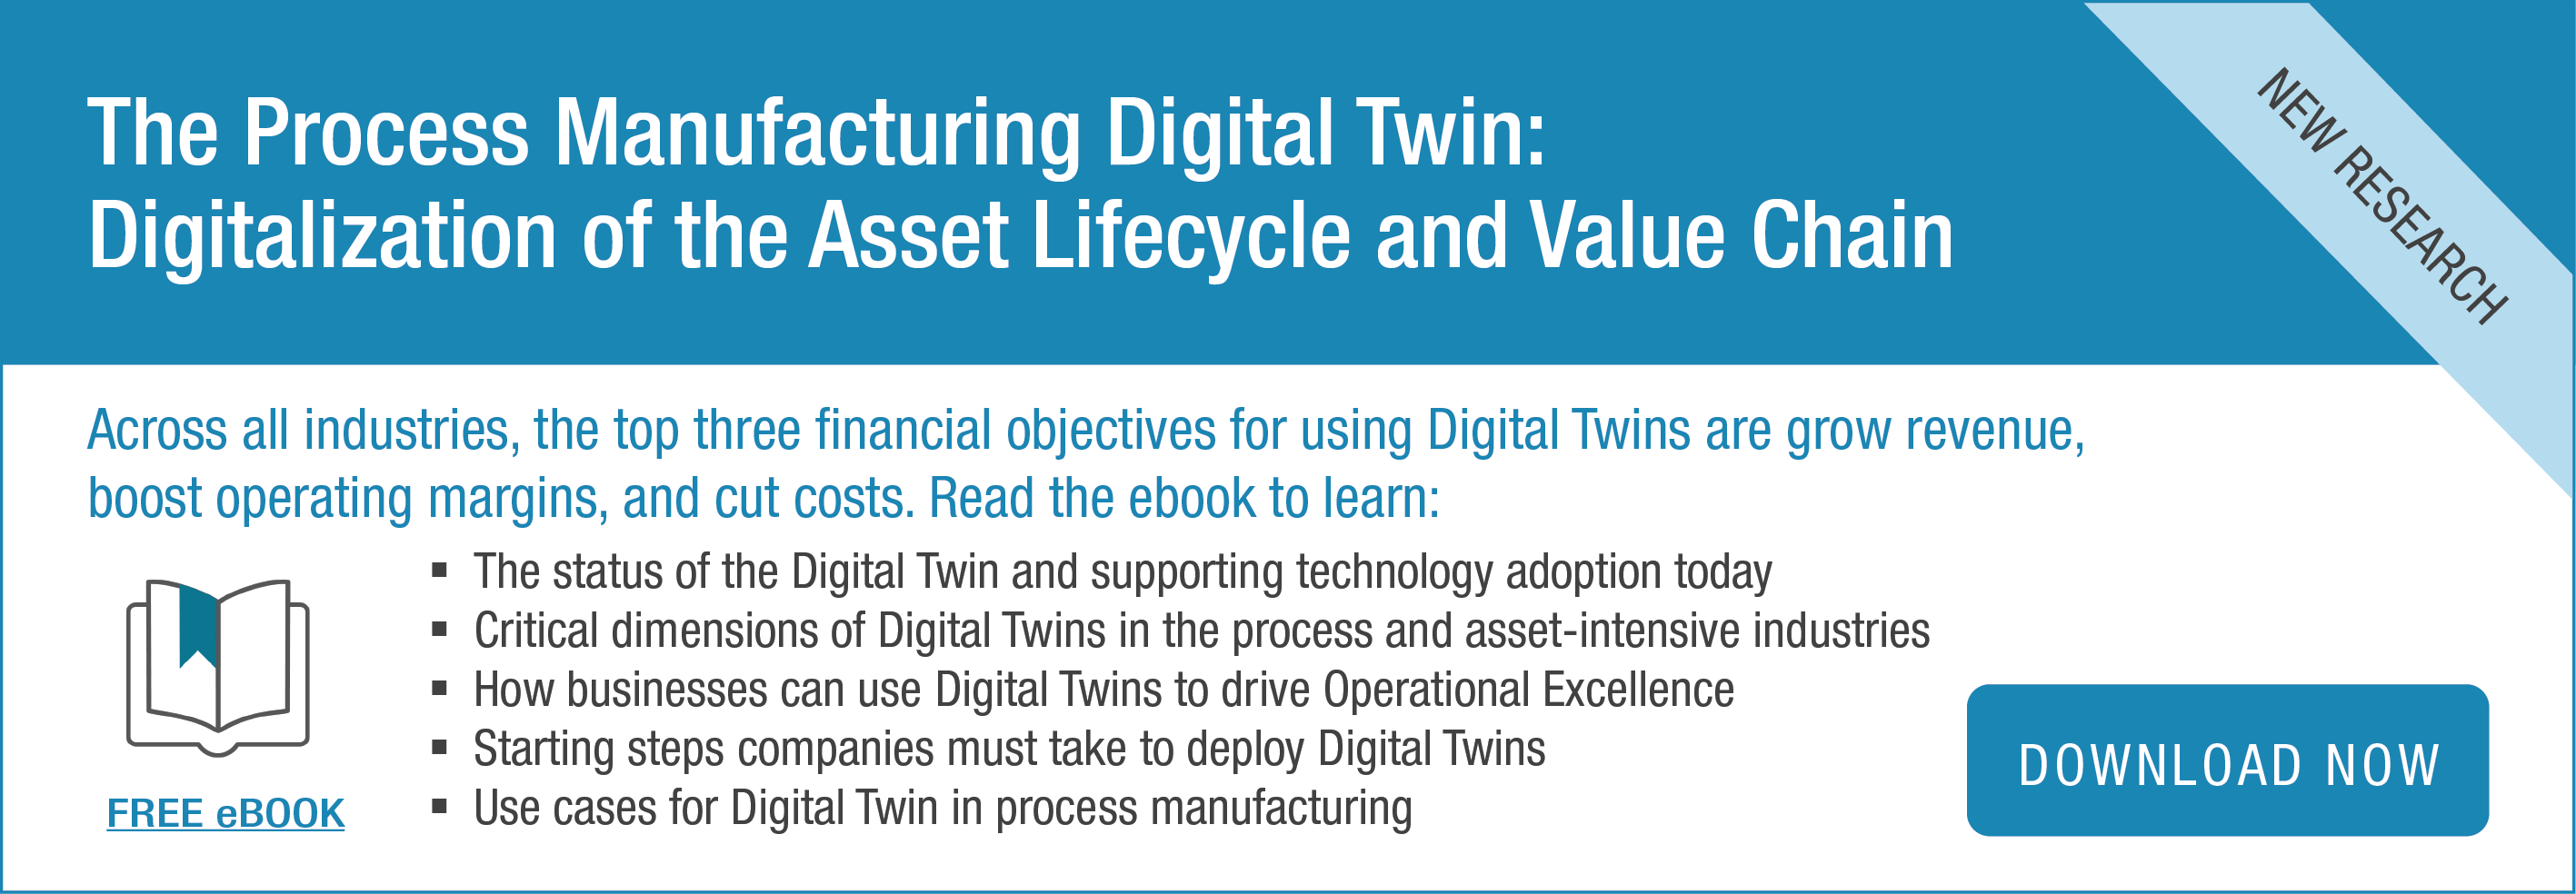 Download The Process Manufacturing Digital Twin Ebook